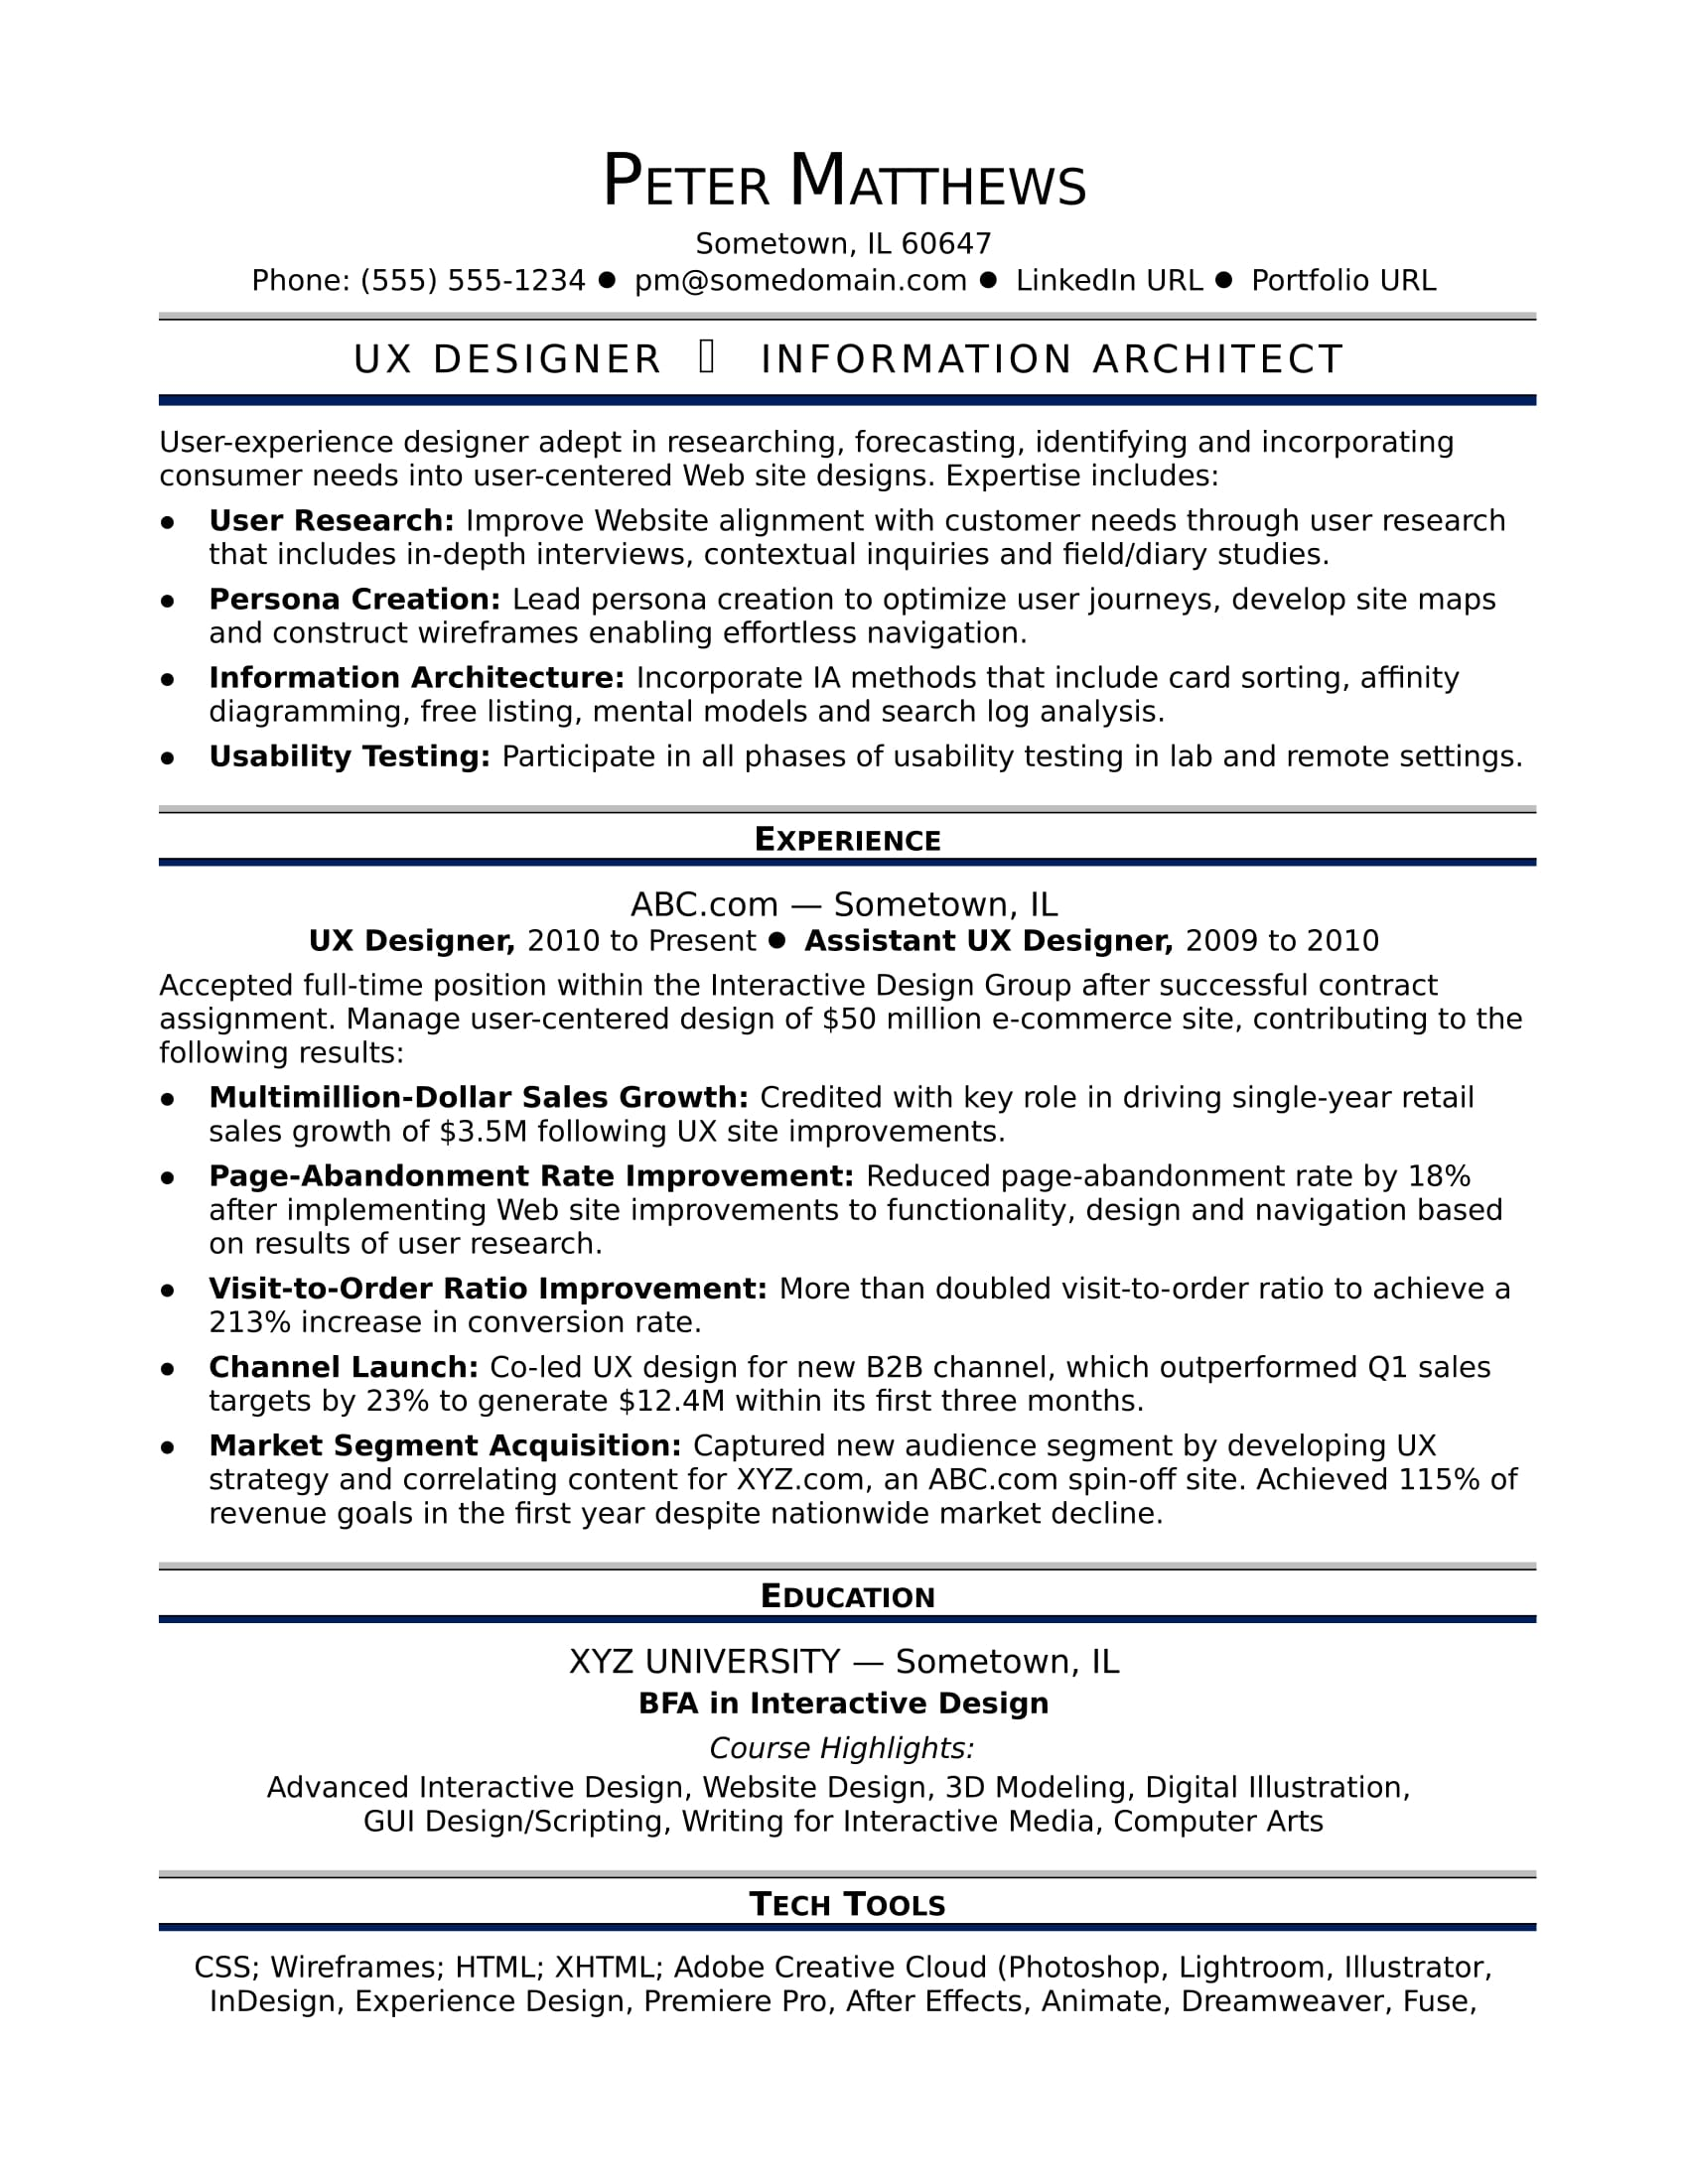 Sample Resume For A Midlevel Ux Designer Monster